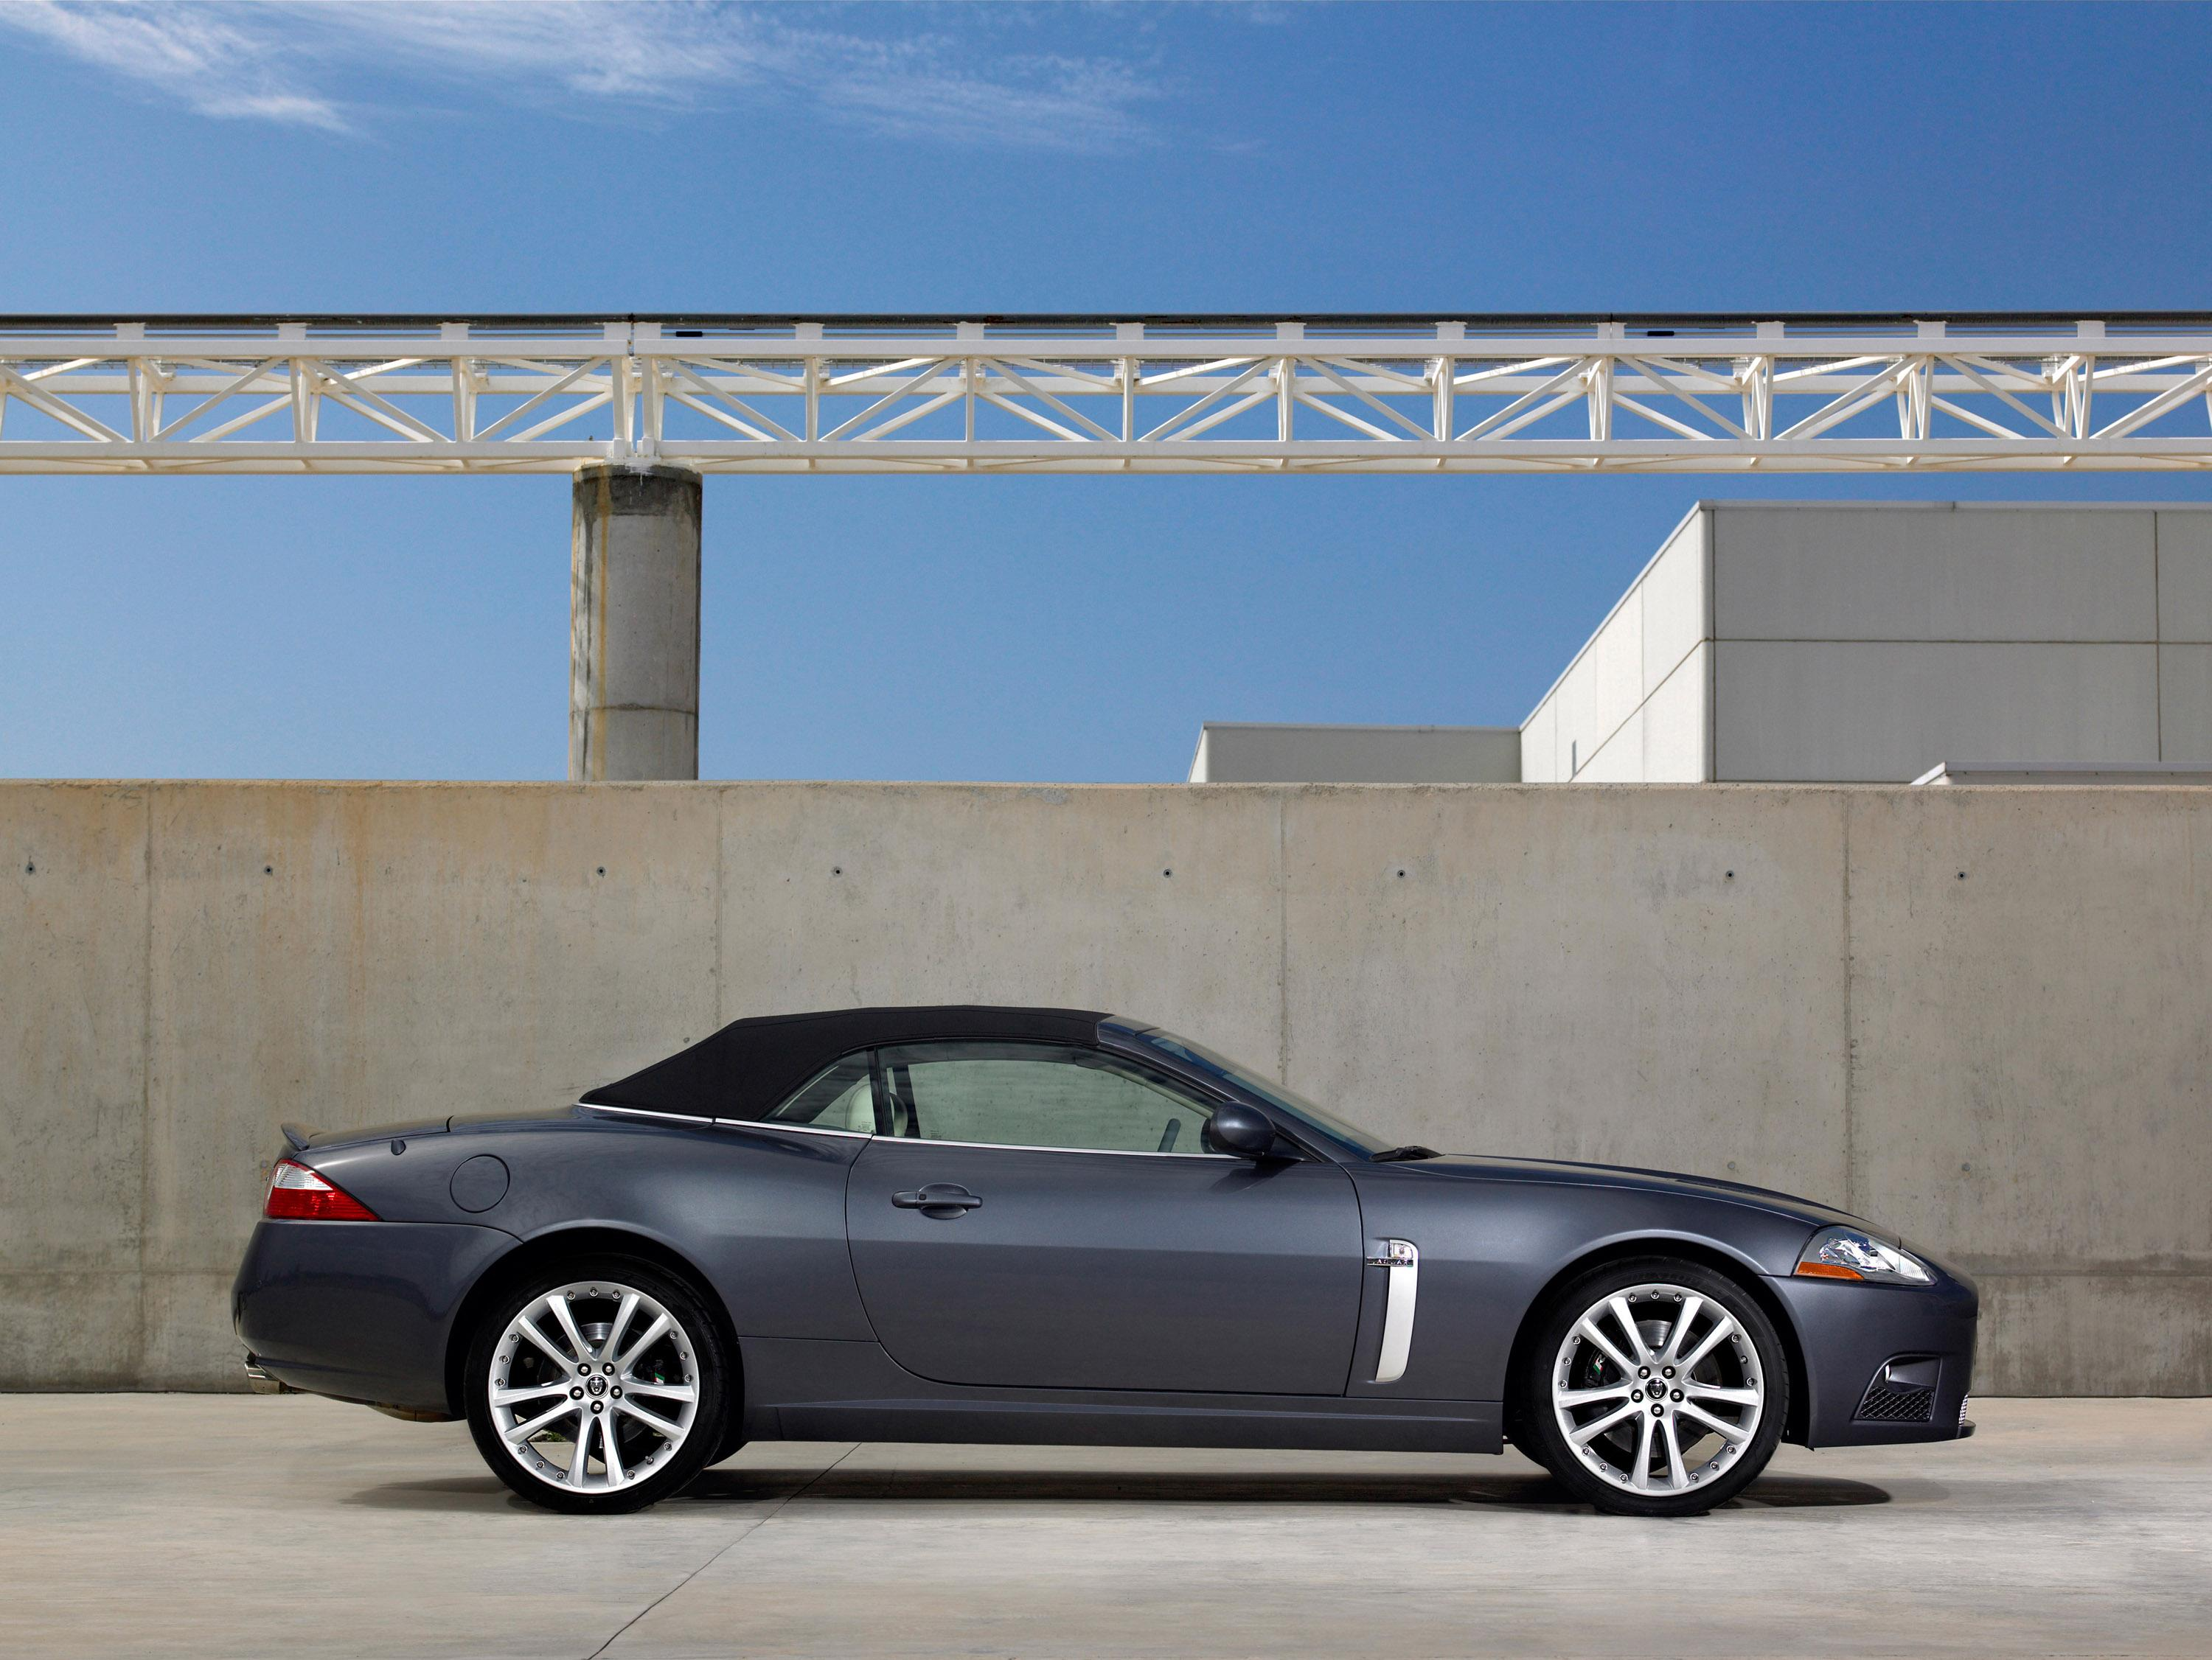 2007 Jaguar XKR | Top Speed. »